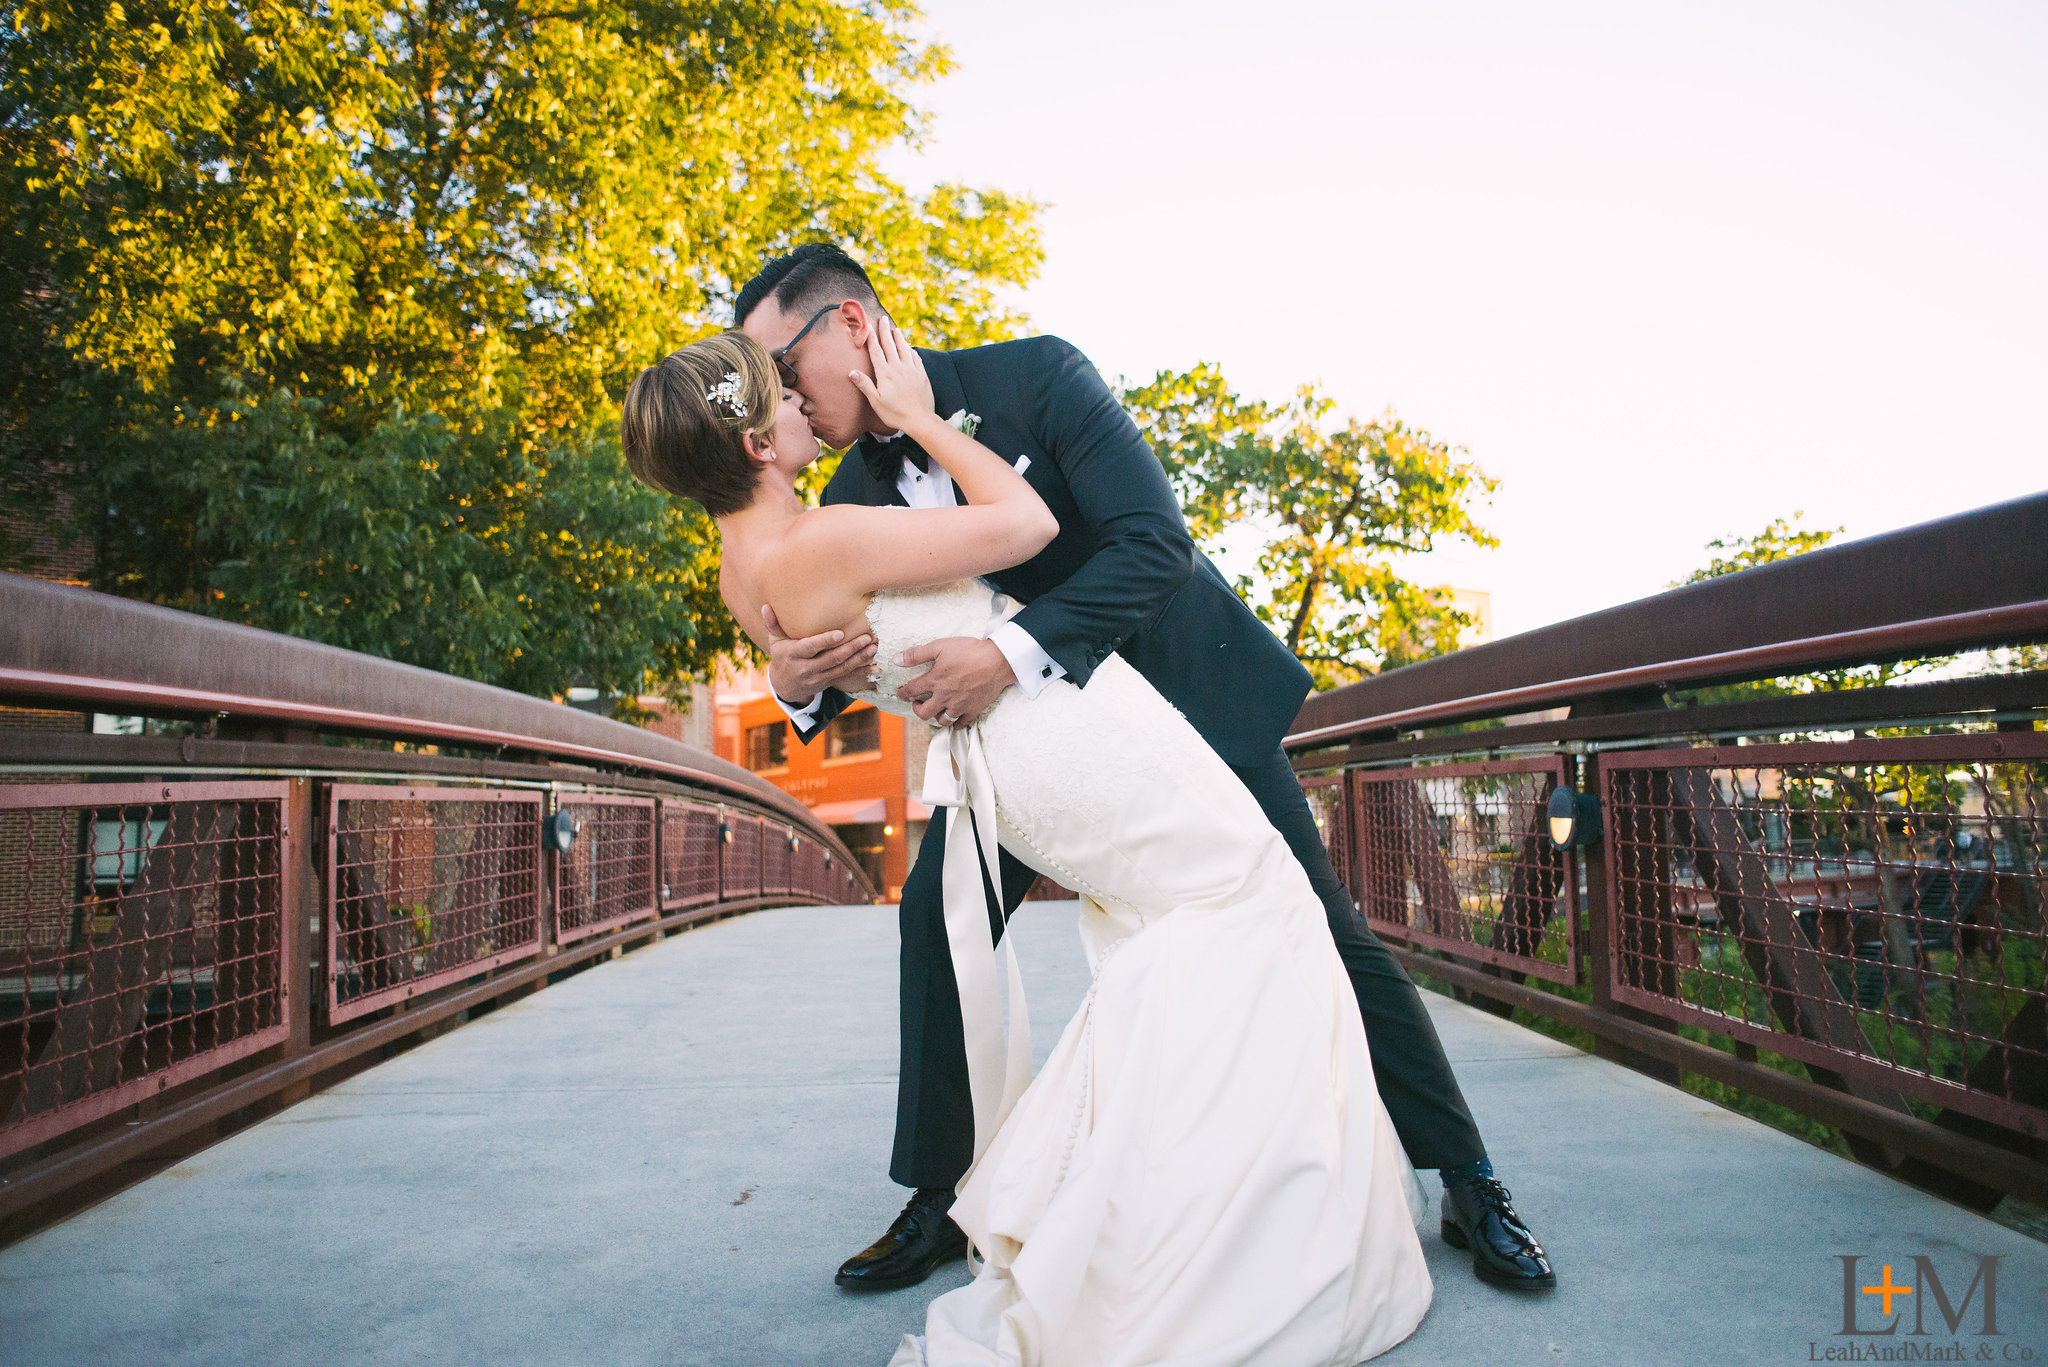 JCT Kitchen Wedding, Atlanta Wedding Venue, Photographer, LeahAndMark & Co.